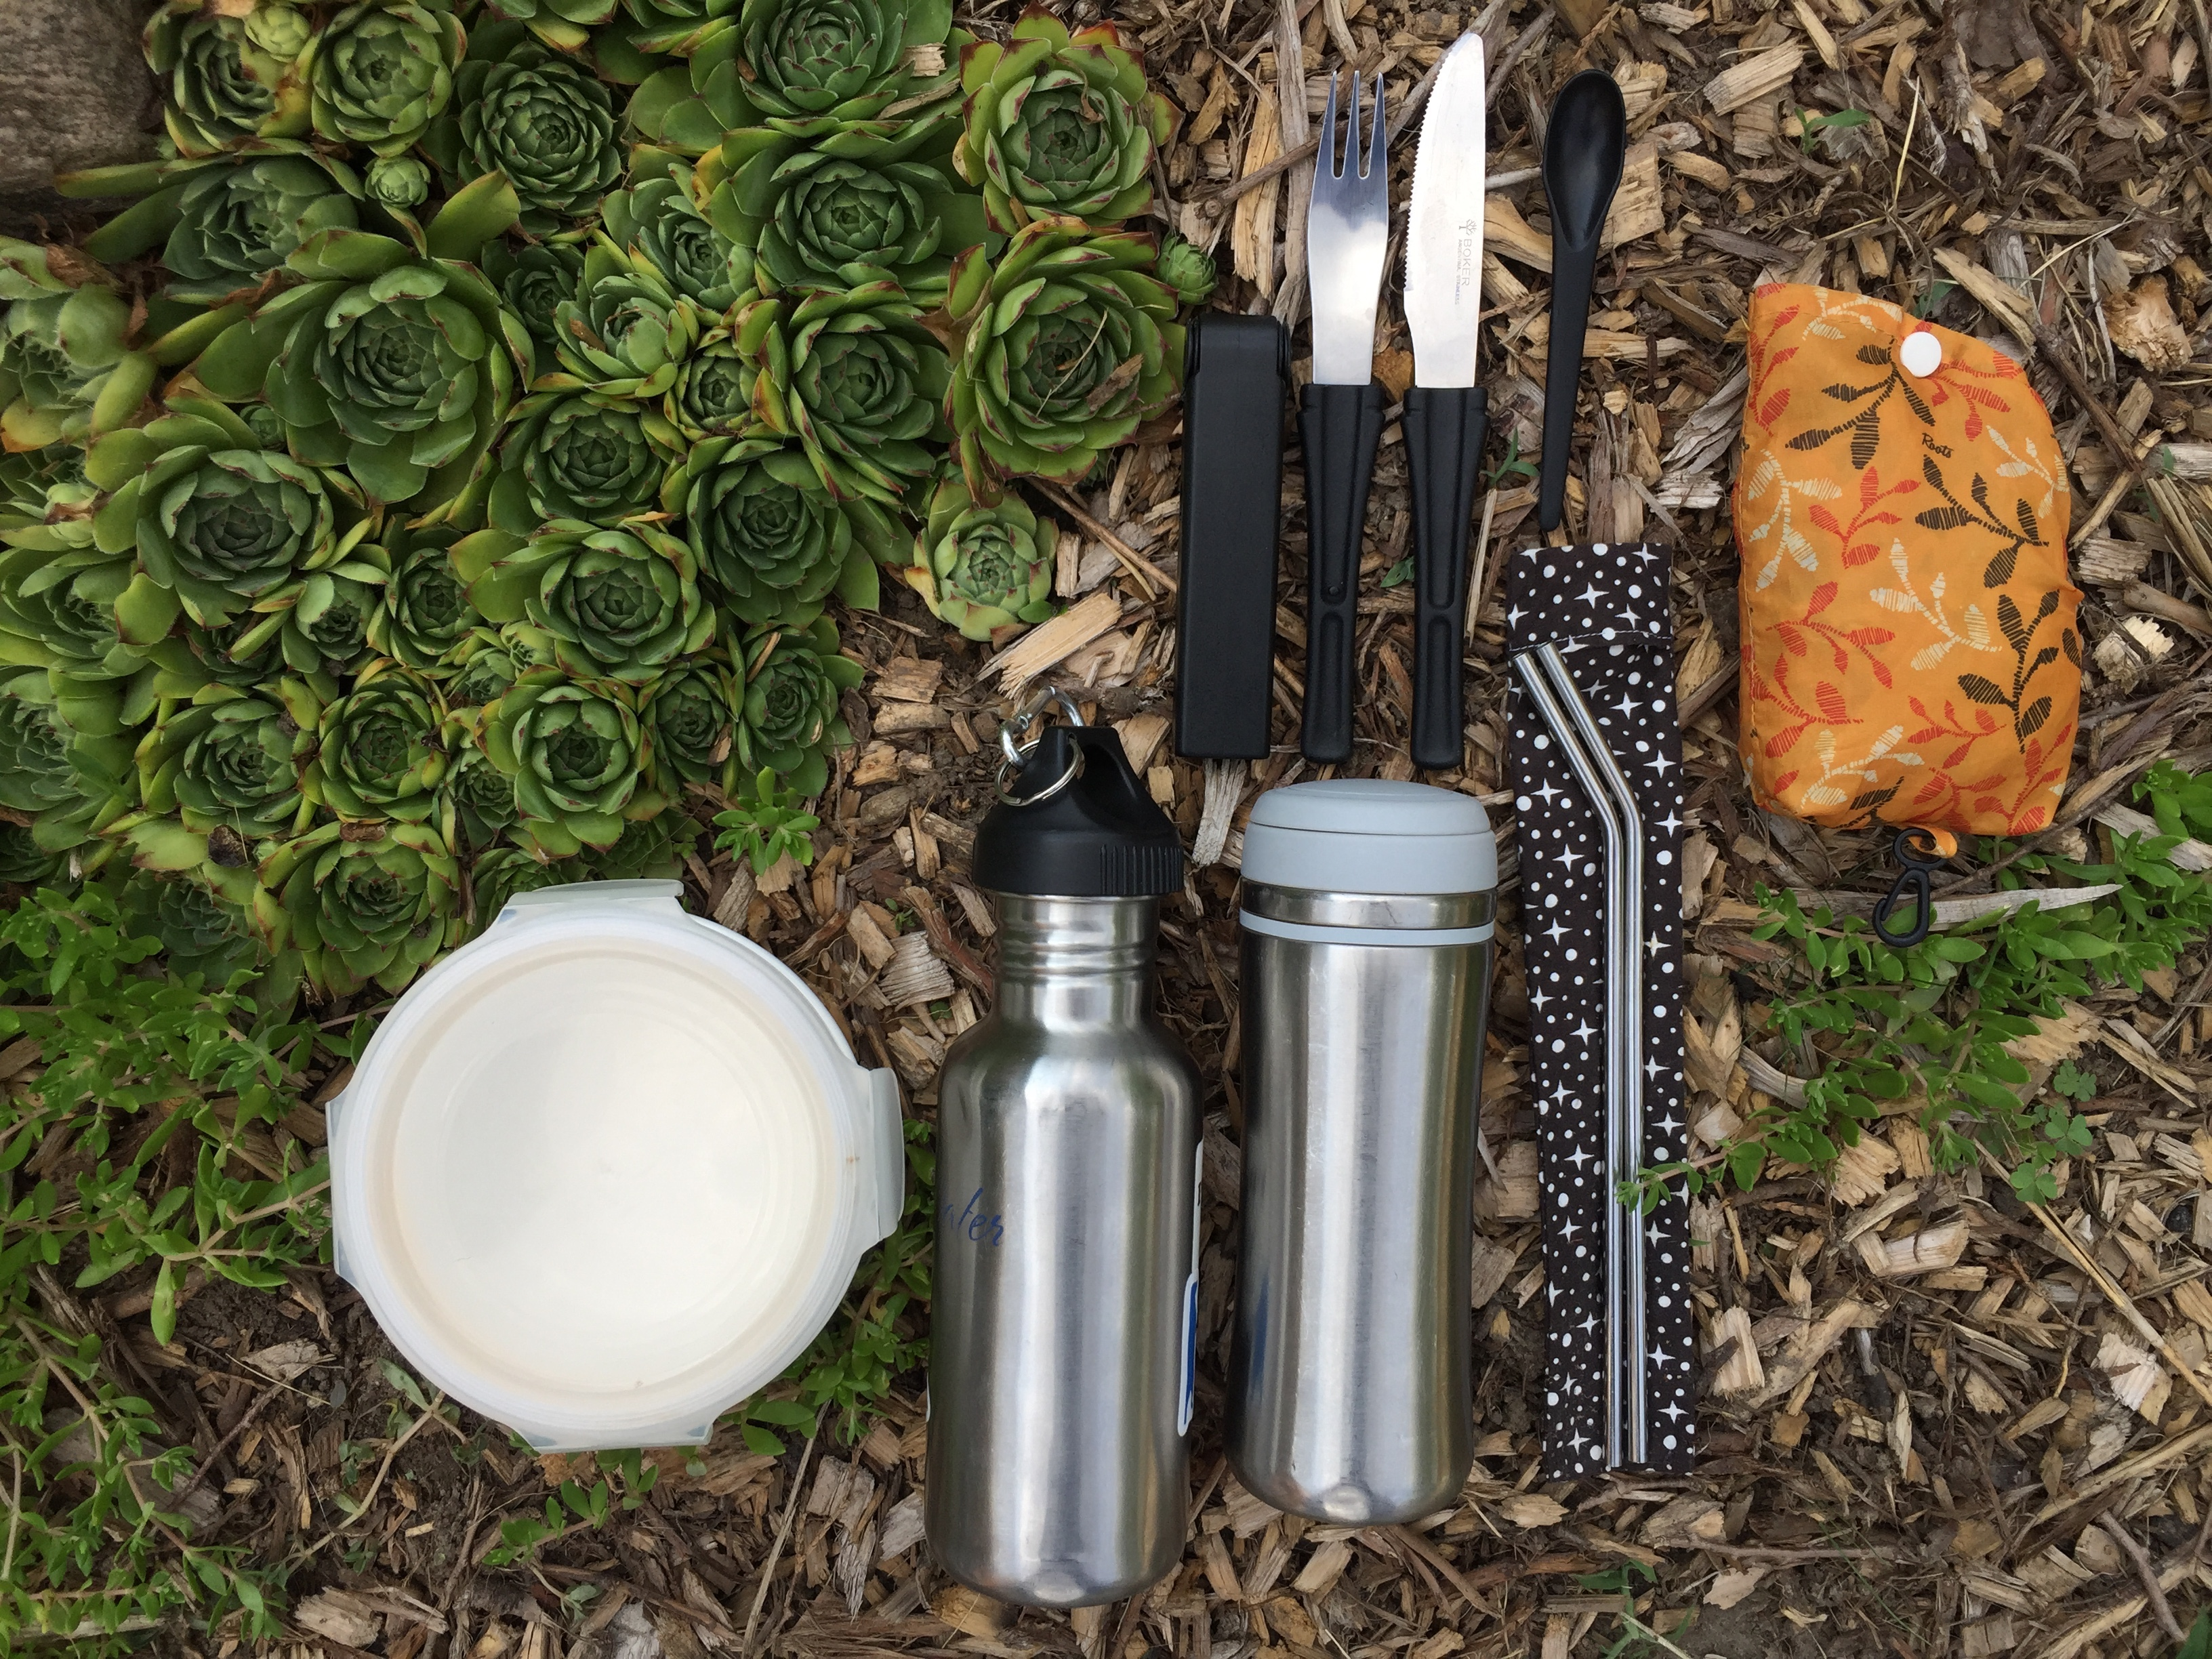 Reusable, stainless steel straws, mugs and bottles.